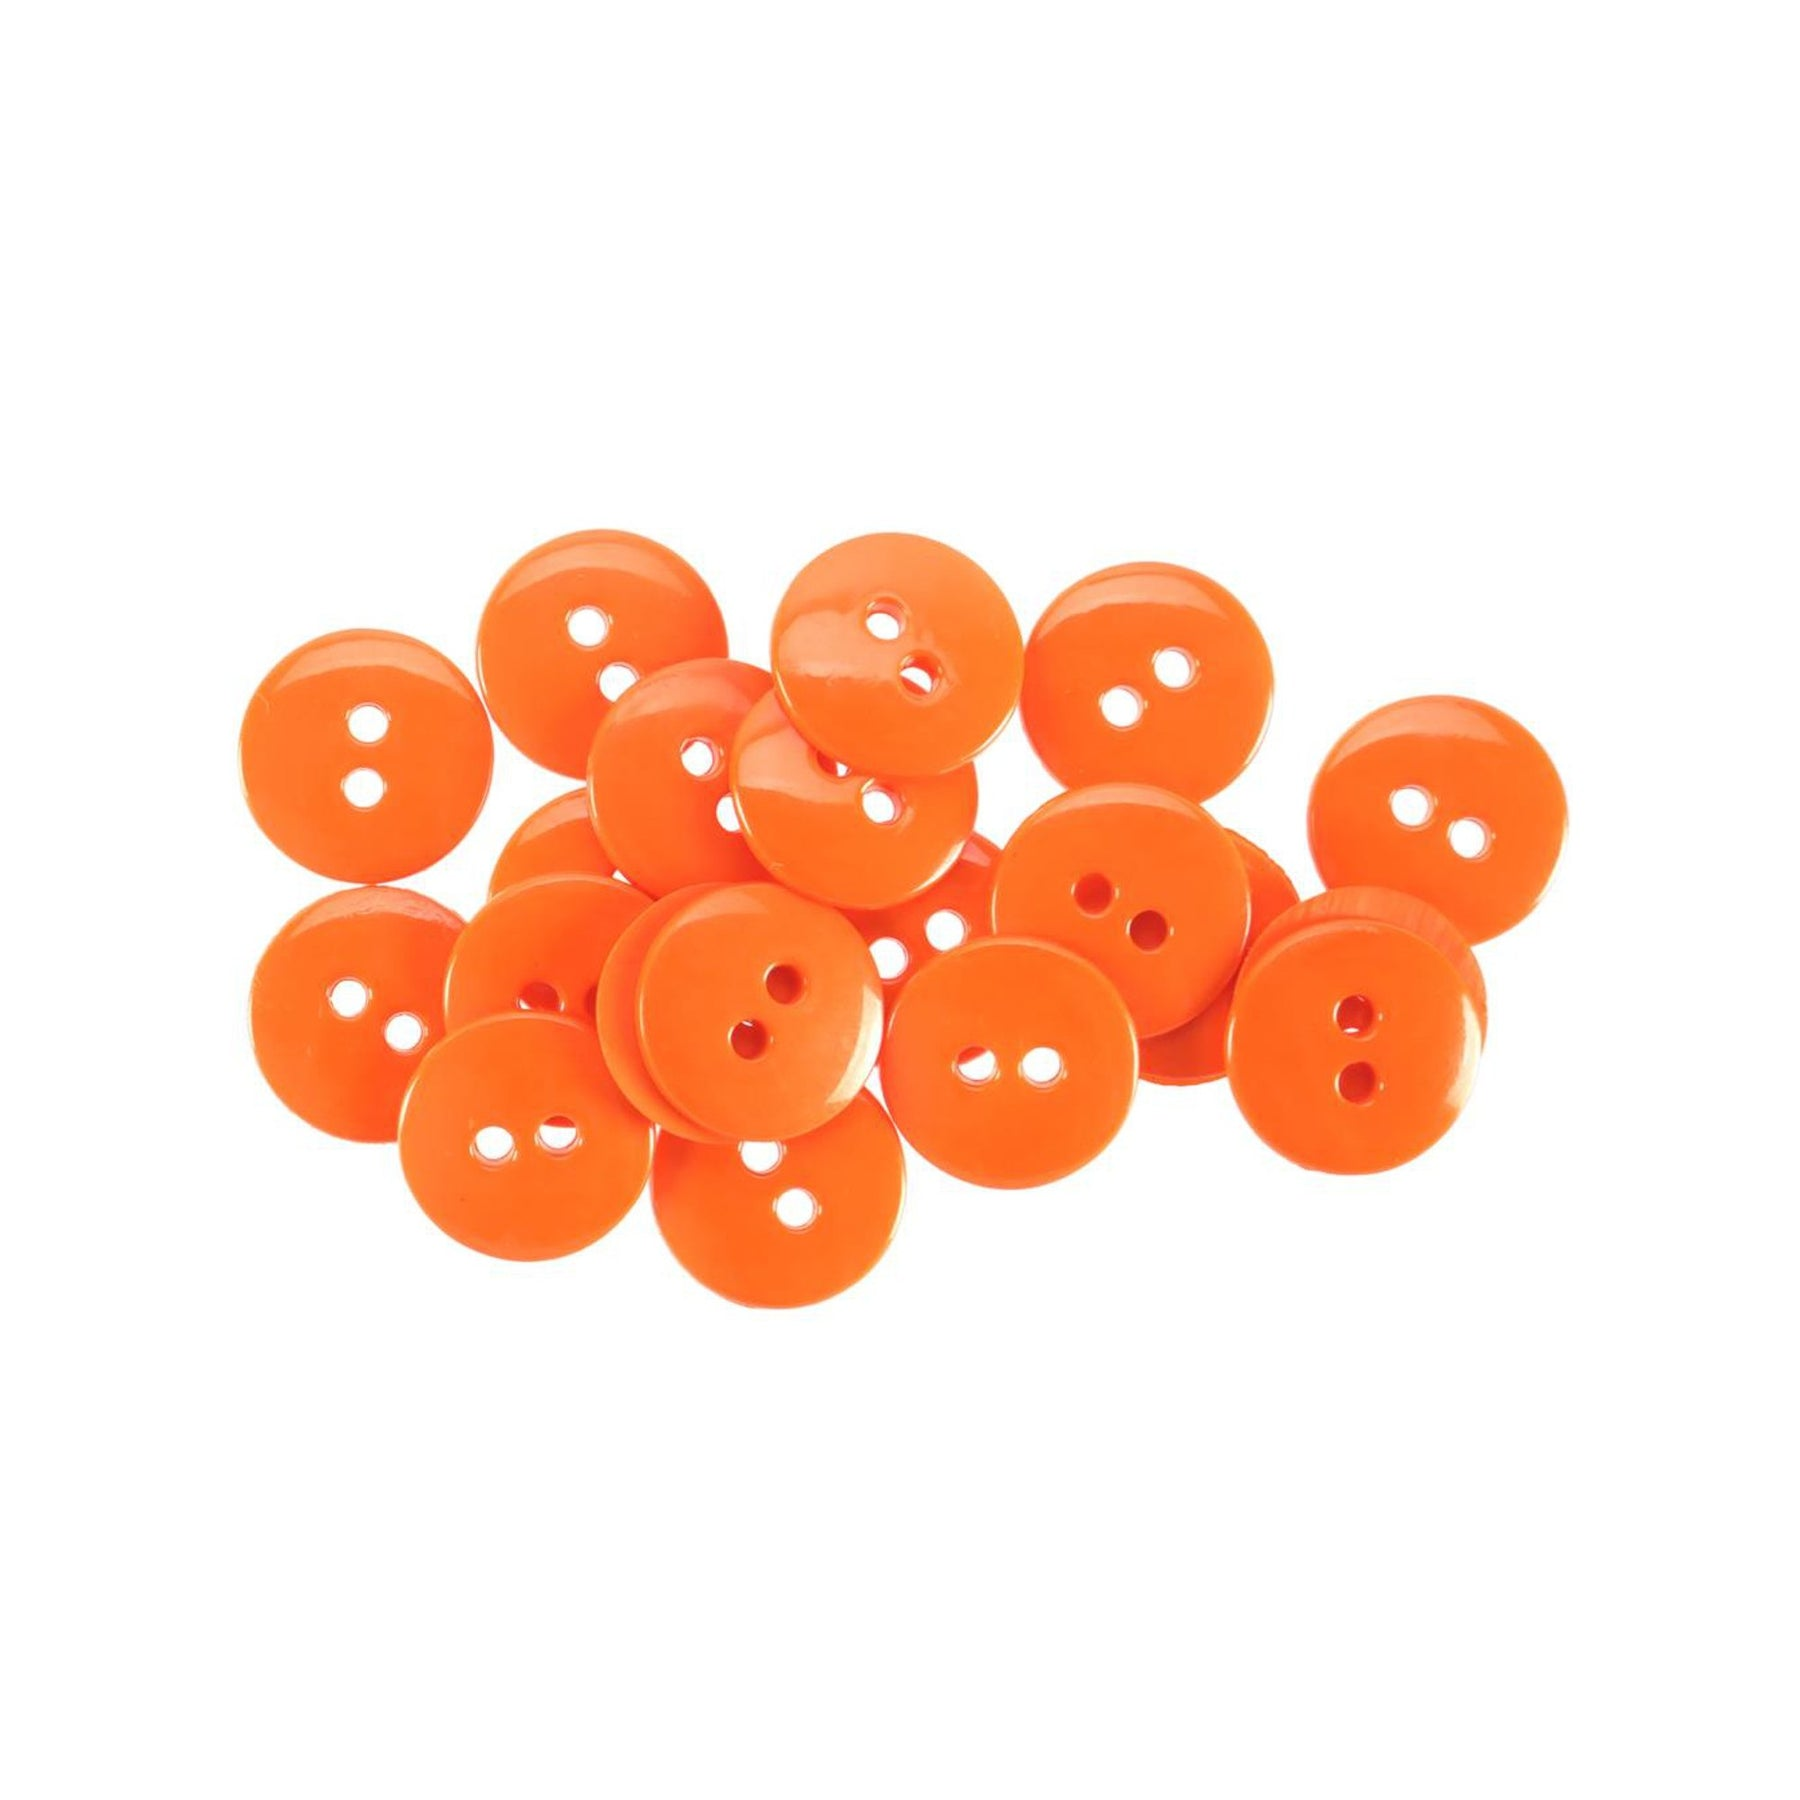 New - Cute Orange Buttons